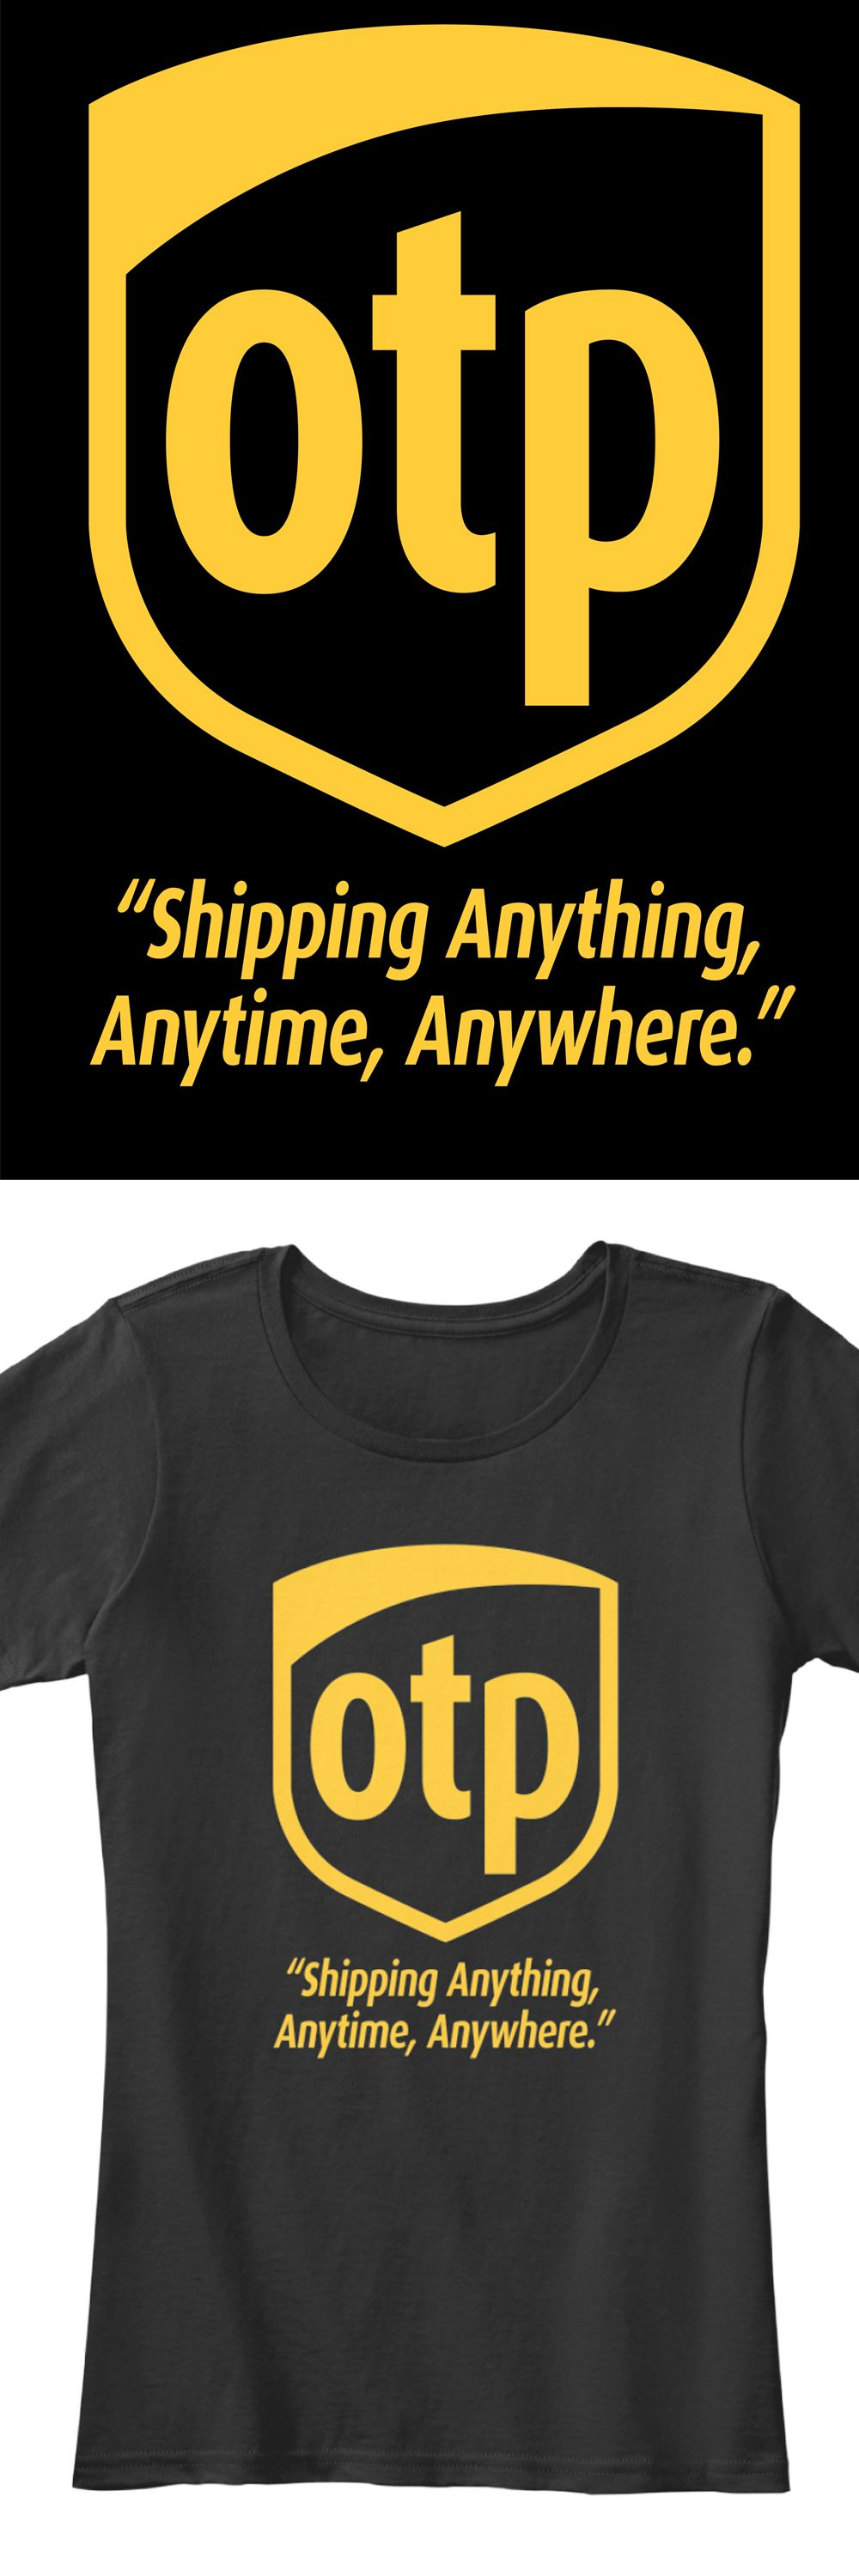 """OTP """"Shipping Anything, Anytime, Anywhere"""". Available in Premium Women Tee, V-Neck Tee, and super soft tank top.  Limited time only, click image to reserve yours before they are gone."""